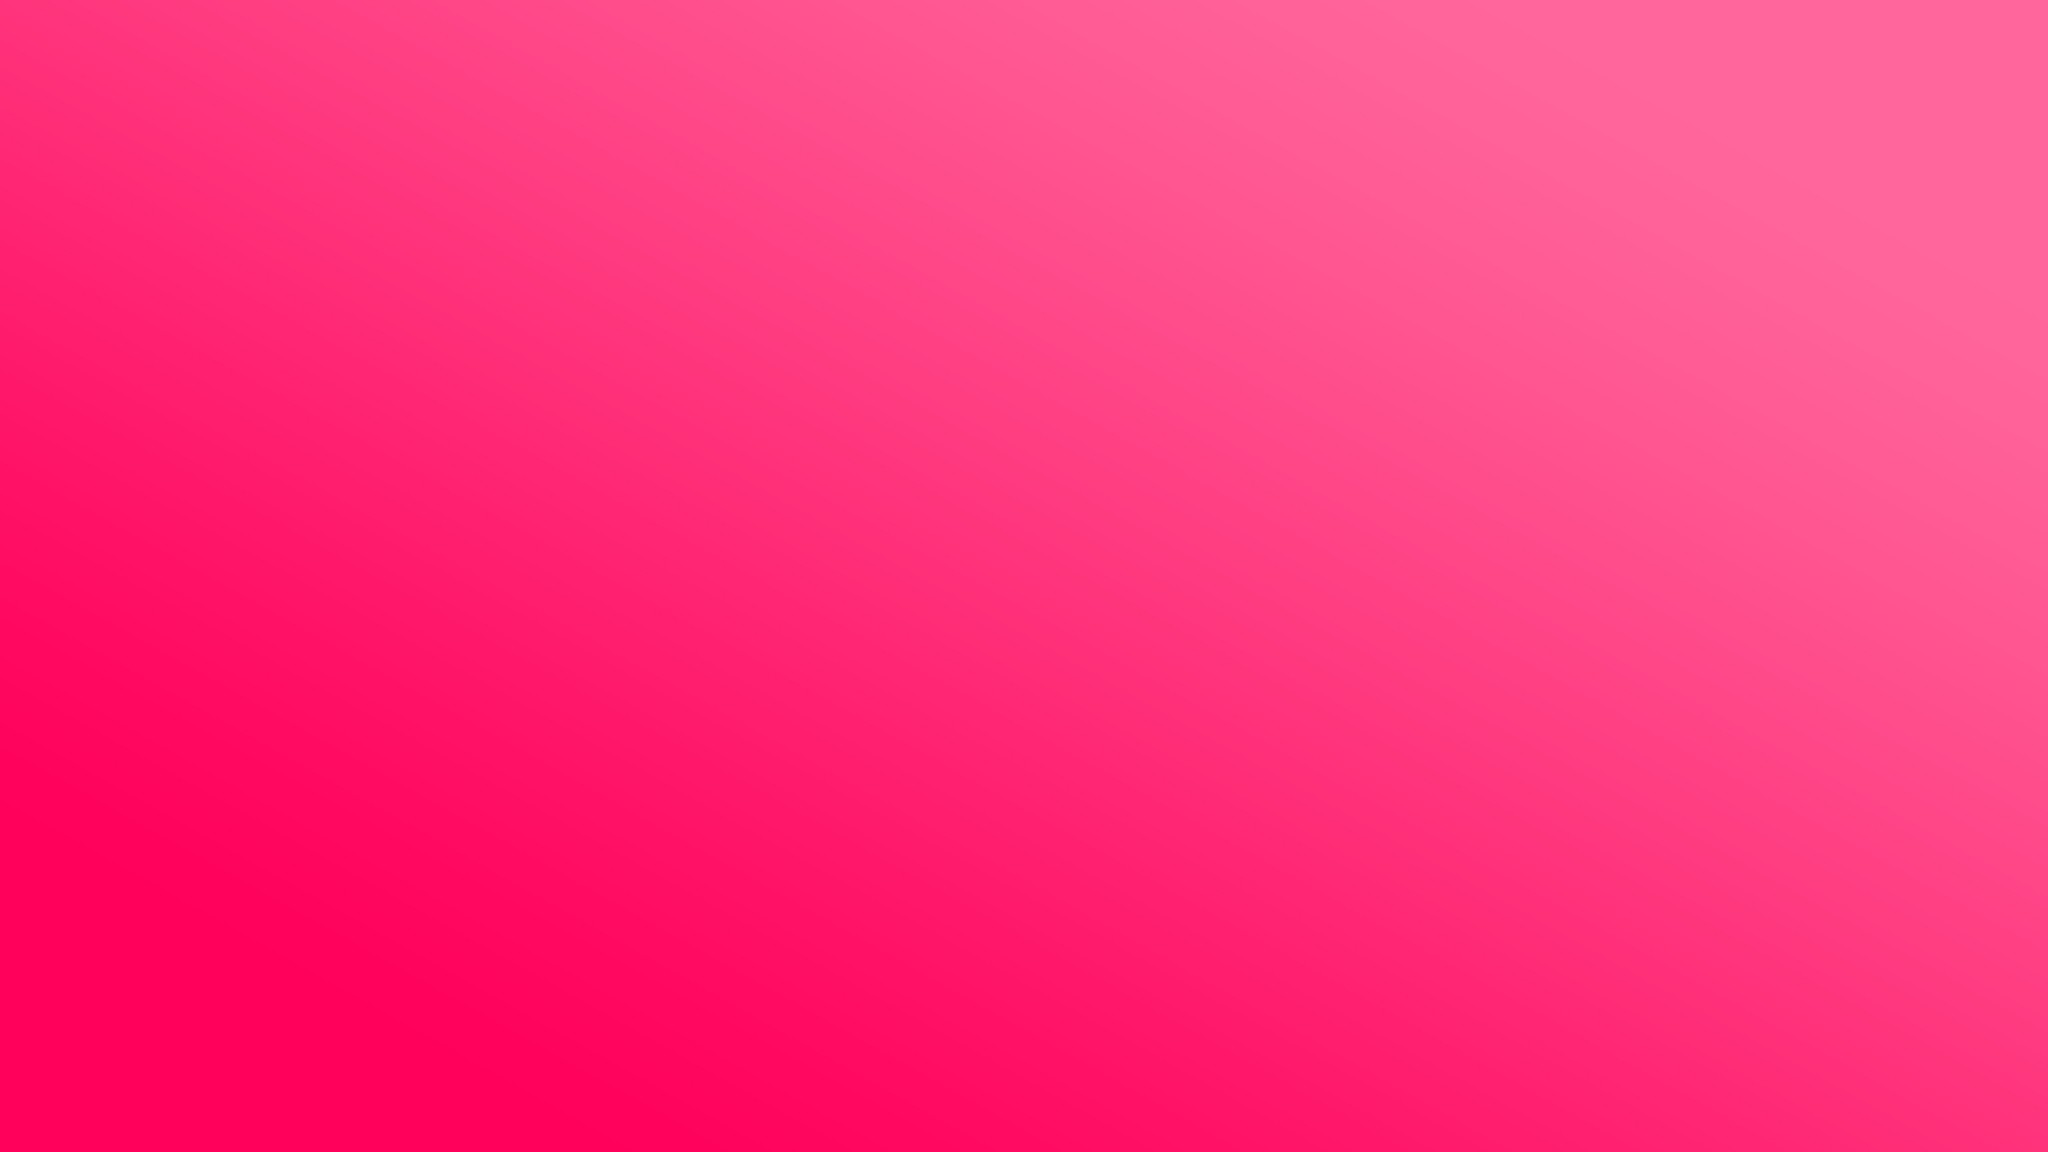 Preview wallpaper pink, solid, color, light, bright 2048×1152